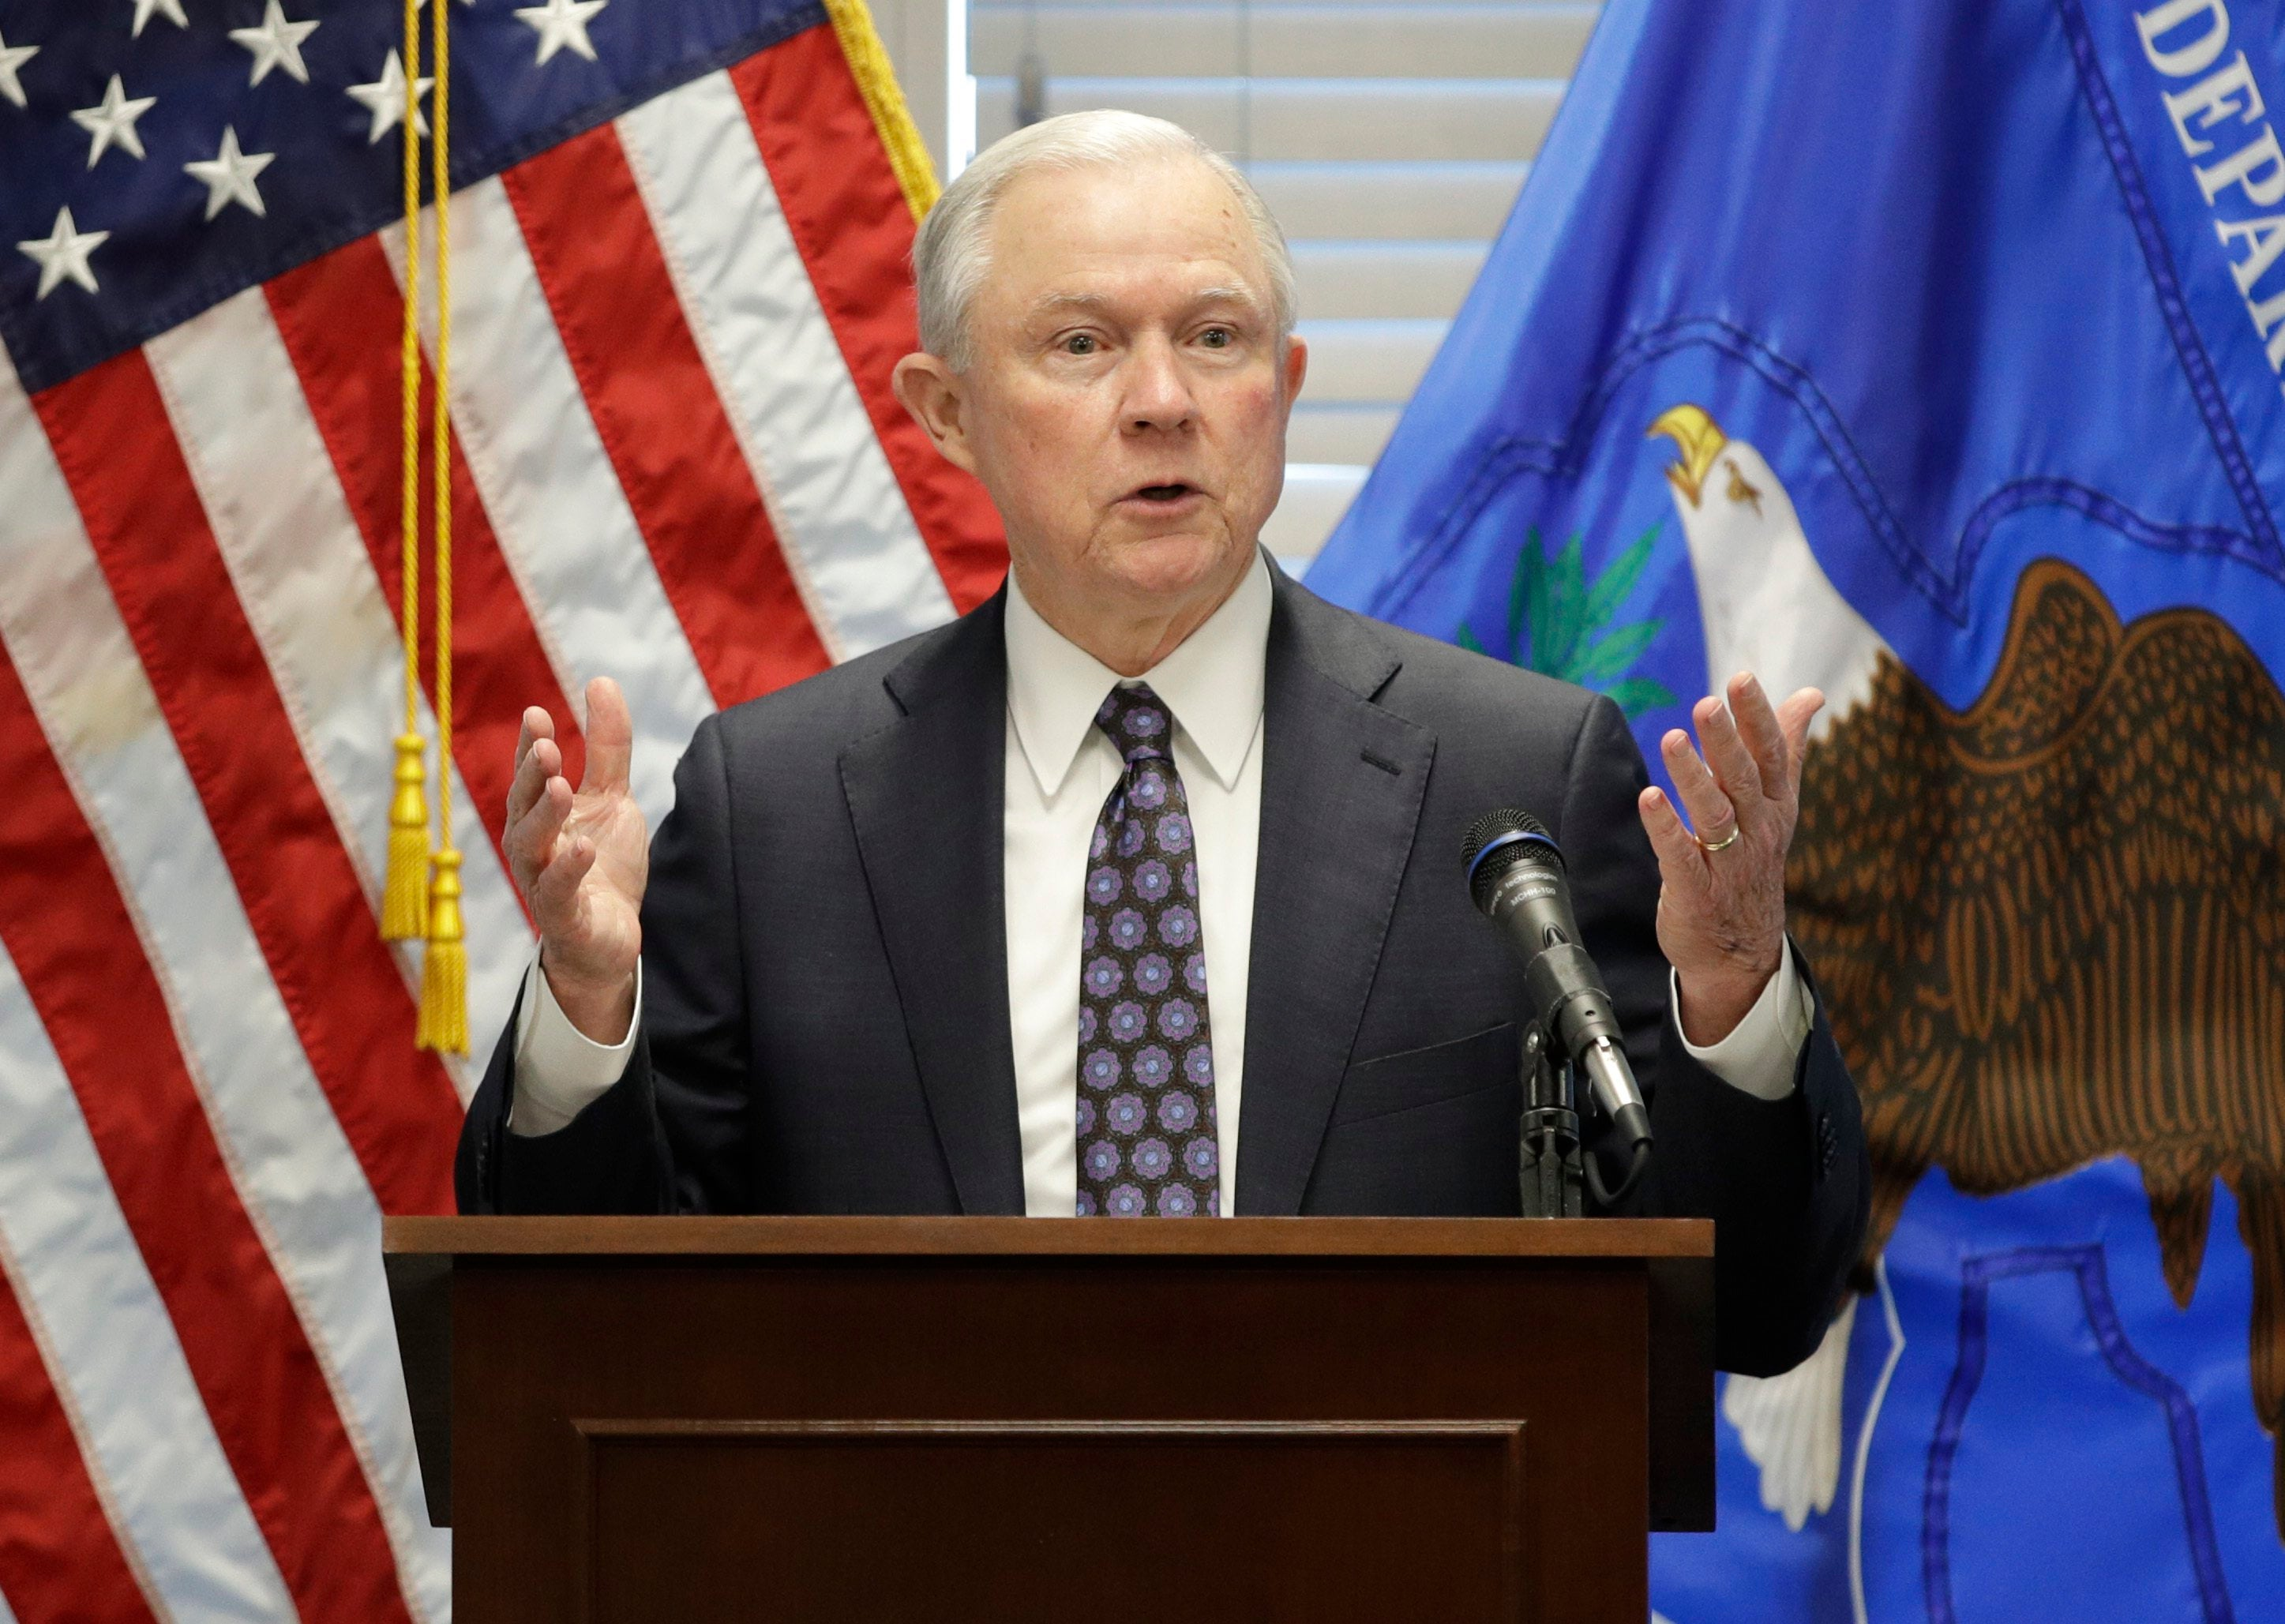 New Justice Department Rules Crack Down On Sanctuary Cities